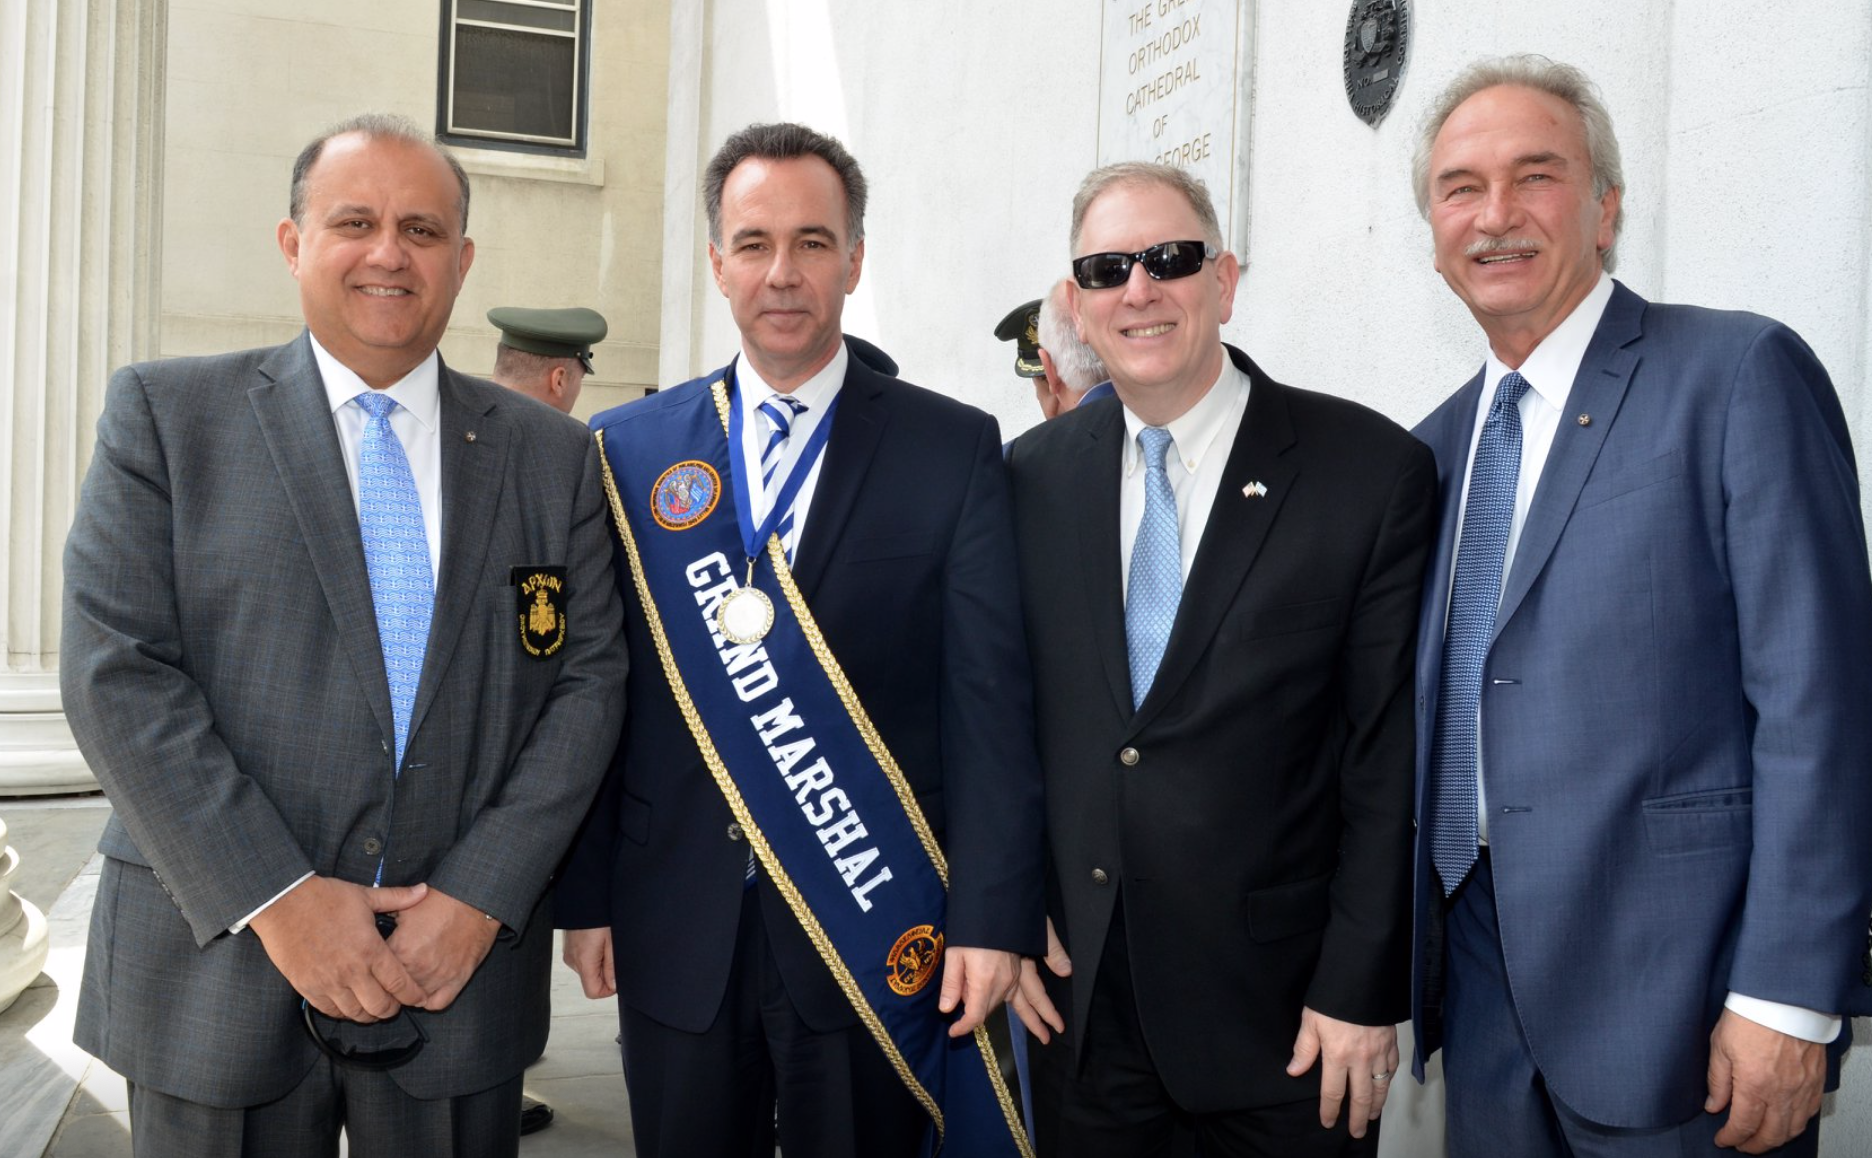 (L-R) Nick Larigakis, NY Consul General of Greece, Konstantinos Koutras, AHI members, Dr. Ilia Iliadis and Demos Vasiliou outside St. George Cathedral in Philadelphia